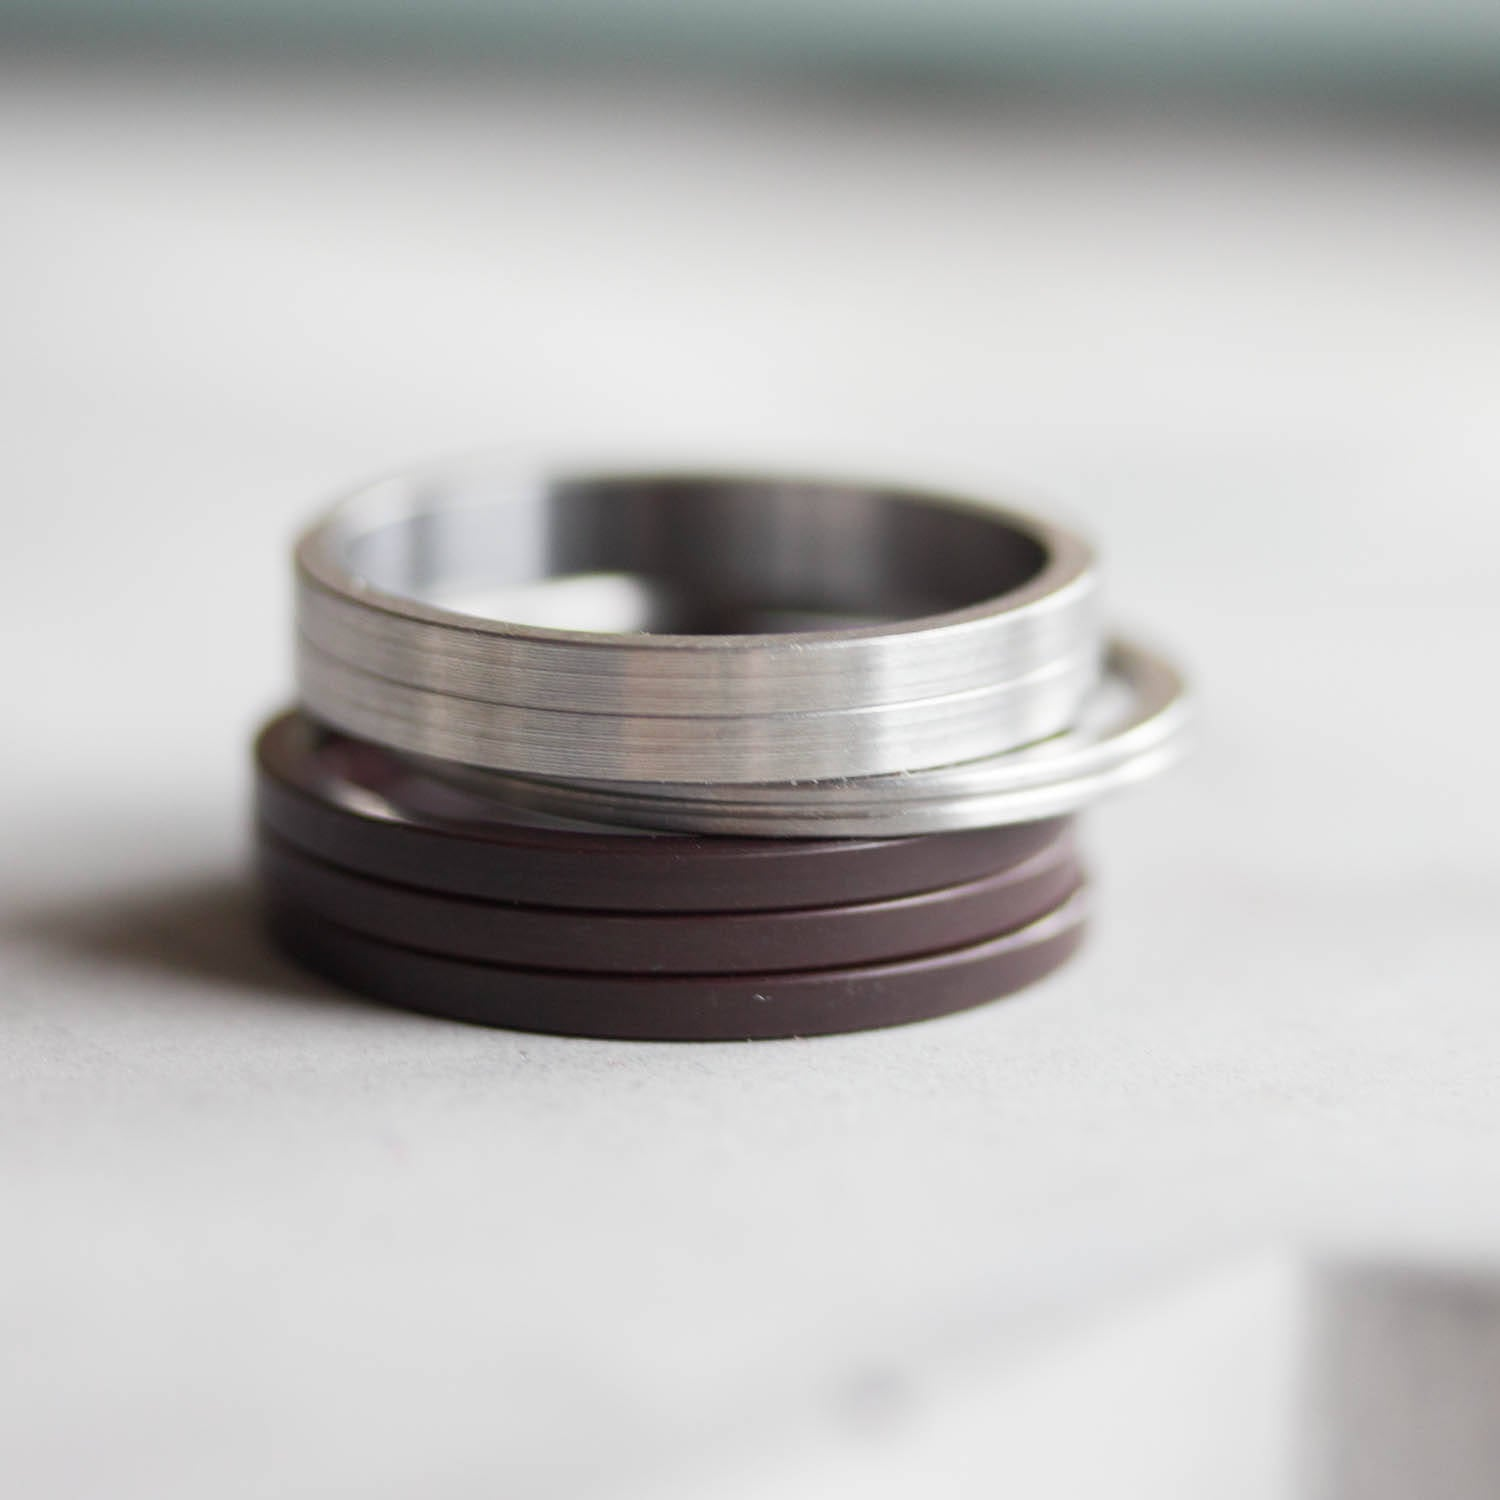 Unique Ring made of recycled HDD motor parts